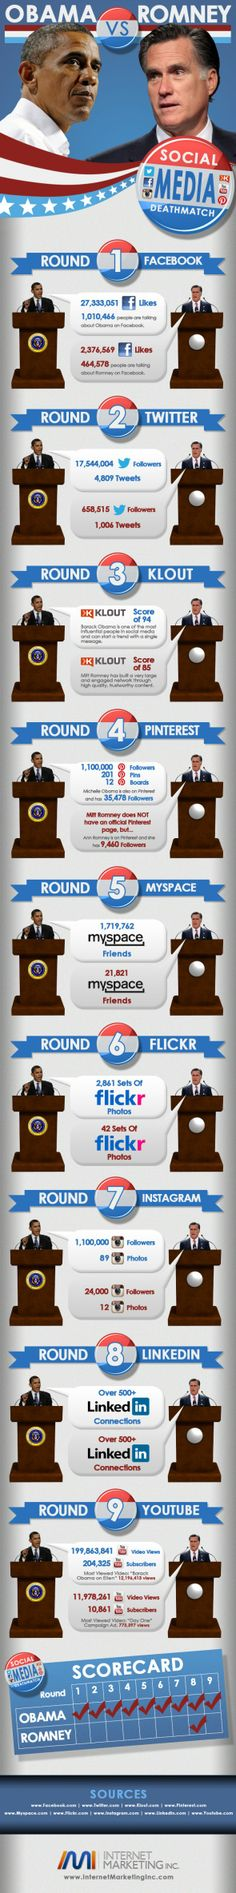 Nice blogpost about Infographic: Social Media Showdown - Obama vs Romney by Infographics Archive <<< repinned by a #SocialMedia #Blogger from #Munich #Germany http://geistreich78.info | follow me on Twitter: https://twitter.com/Geistreich78 | Google+: https://plus.google.com/102815221668631171374/ | Facebook: https://www.facebook.com/hoffmeister.geistreich78